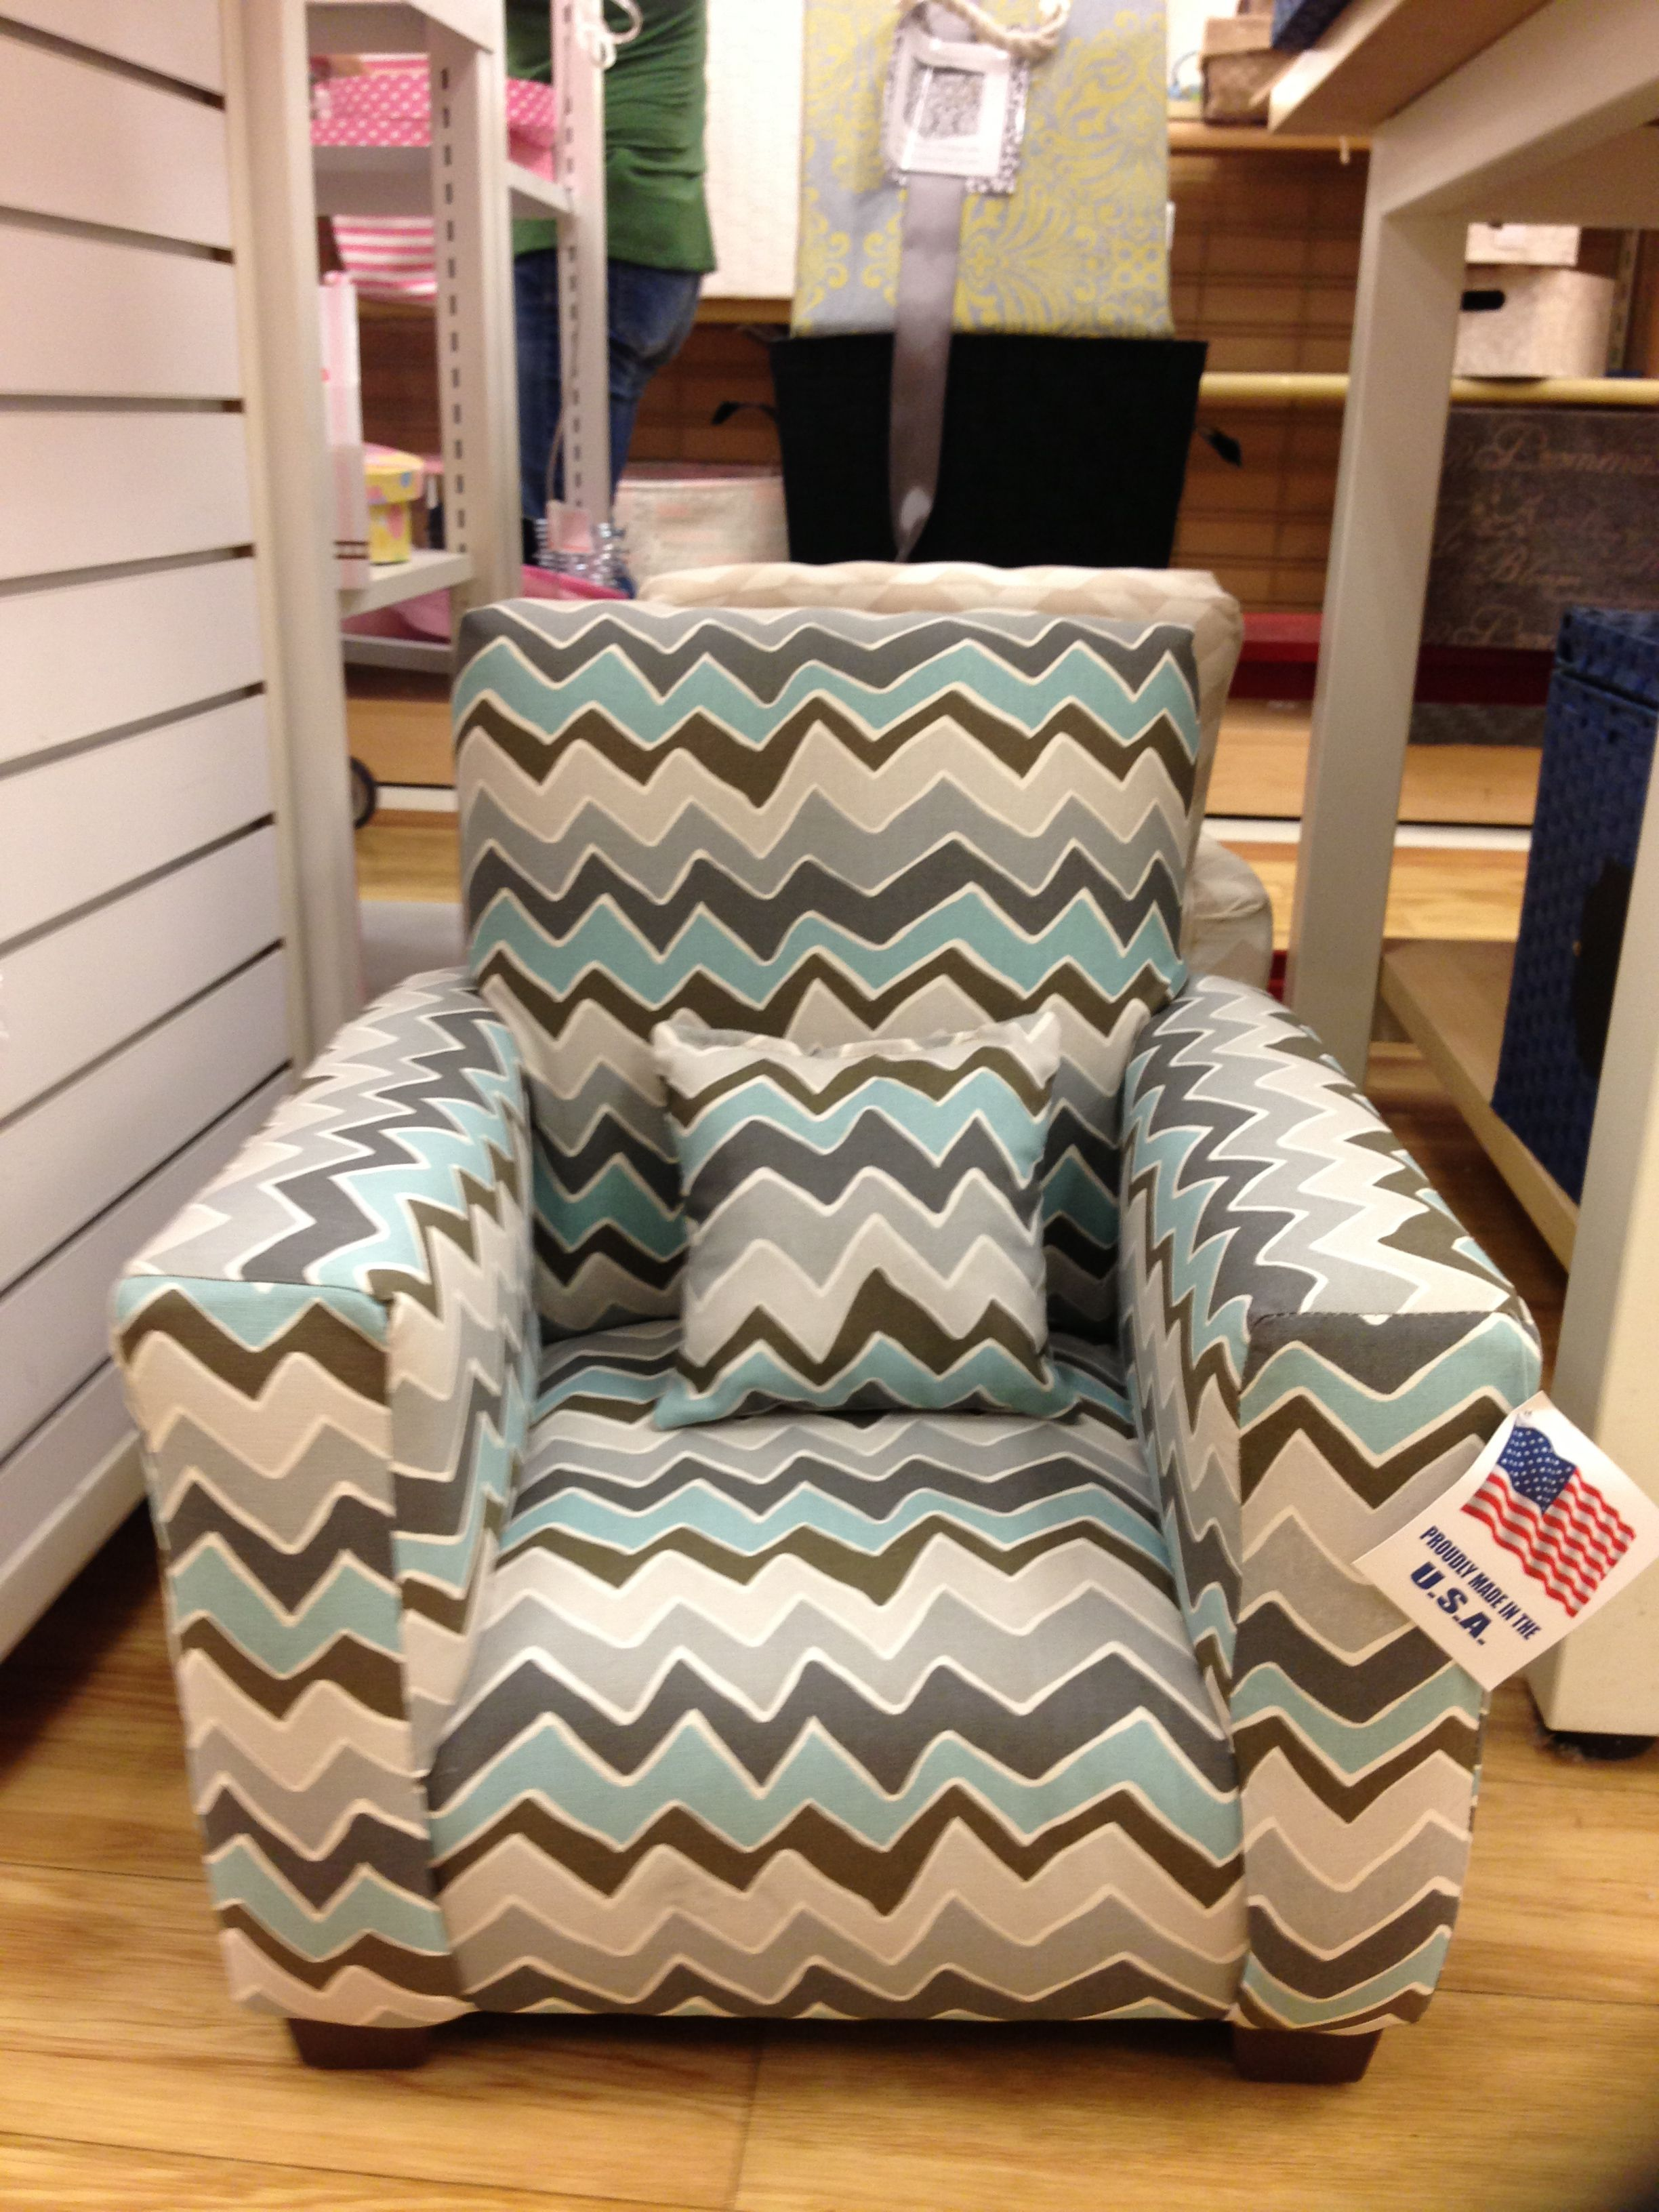 Kids chair at Marshalls home goods  Home Goods  Home